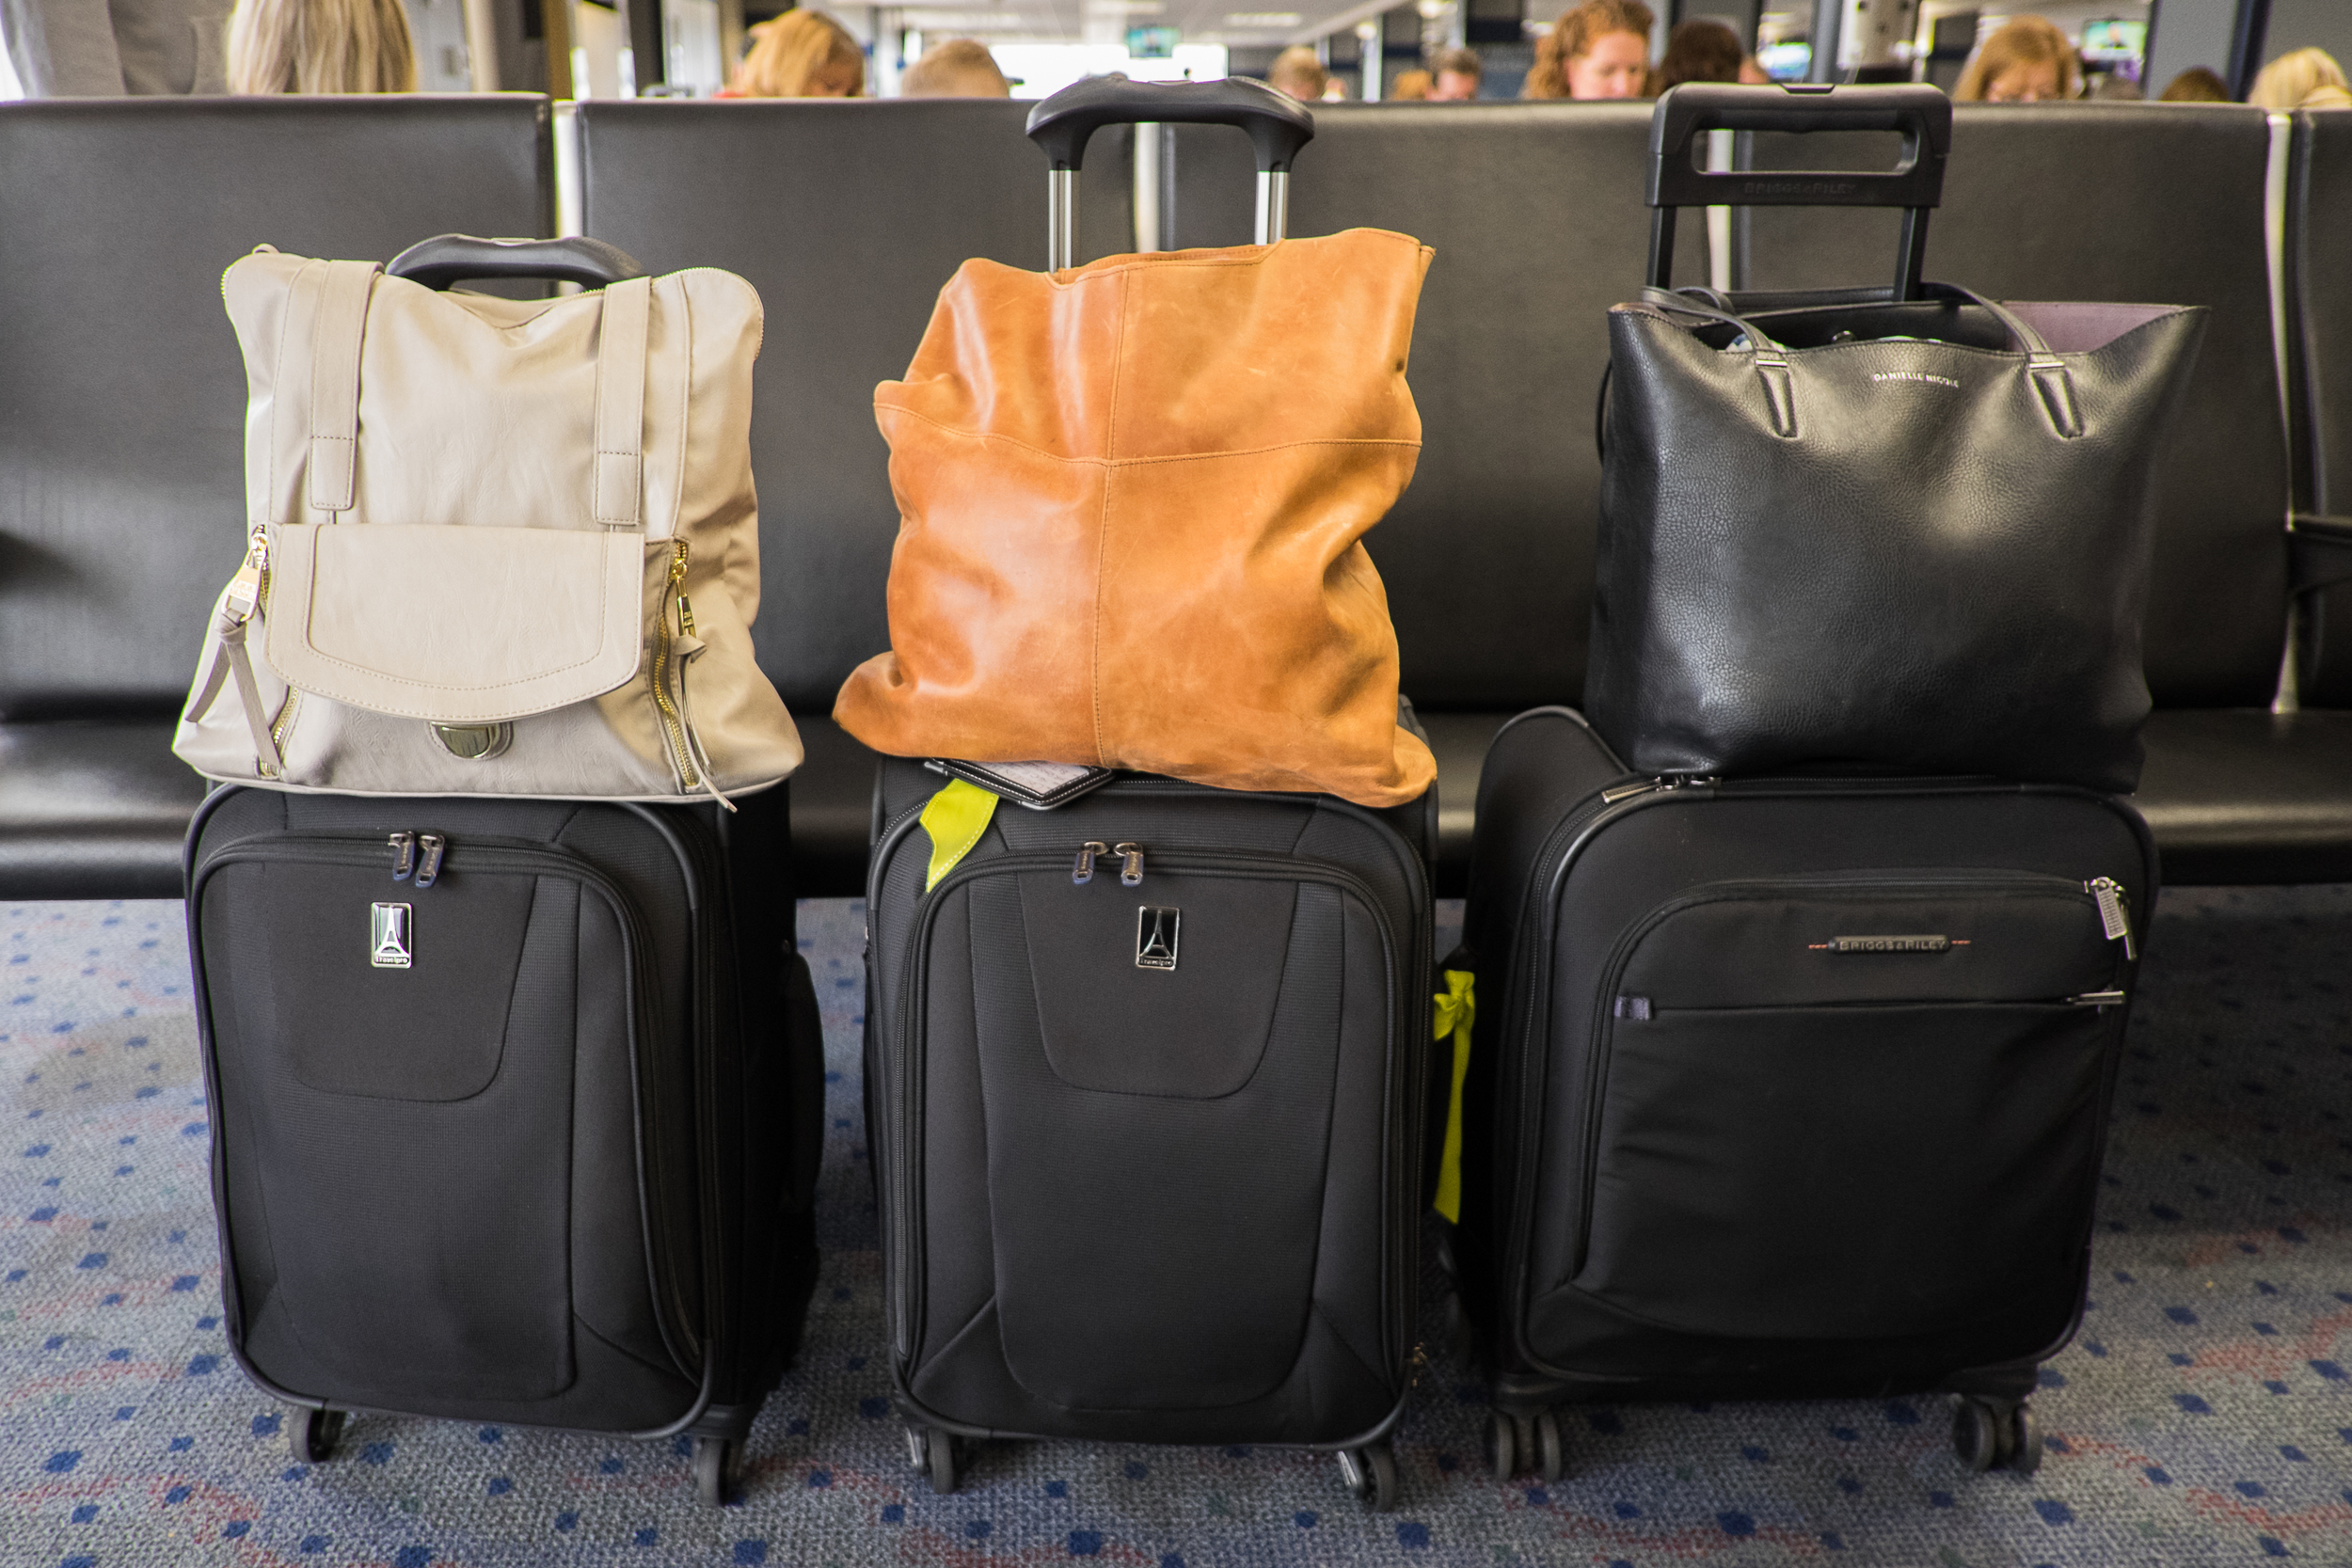 The subject of much conversation...could three women really pack for a 10-day trip with just two carry-on bags each?